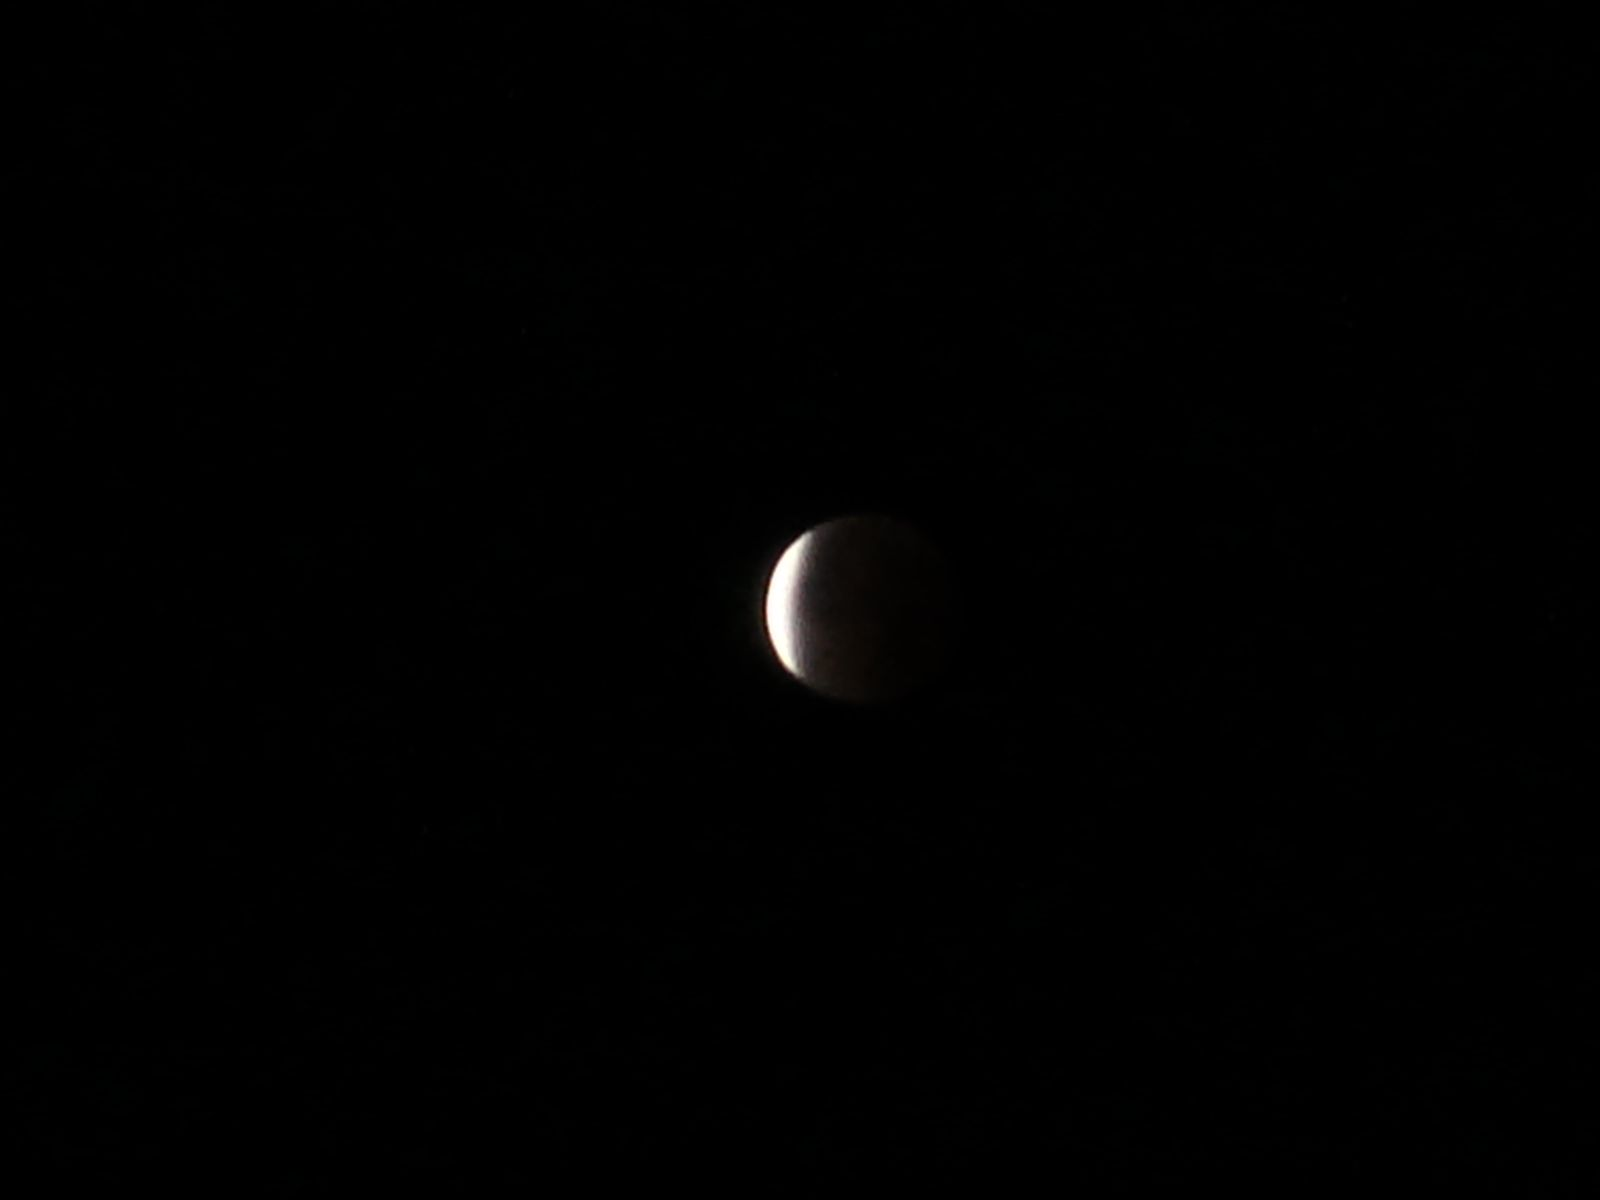 lunar_eclipse_163.jpg